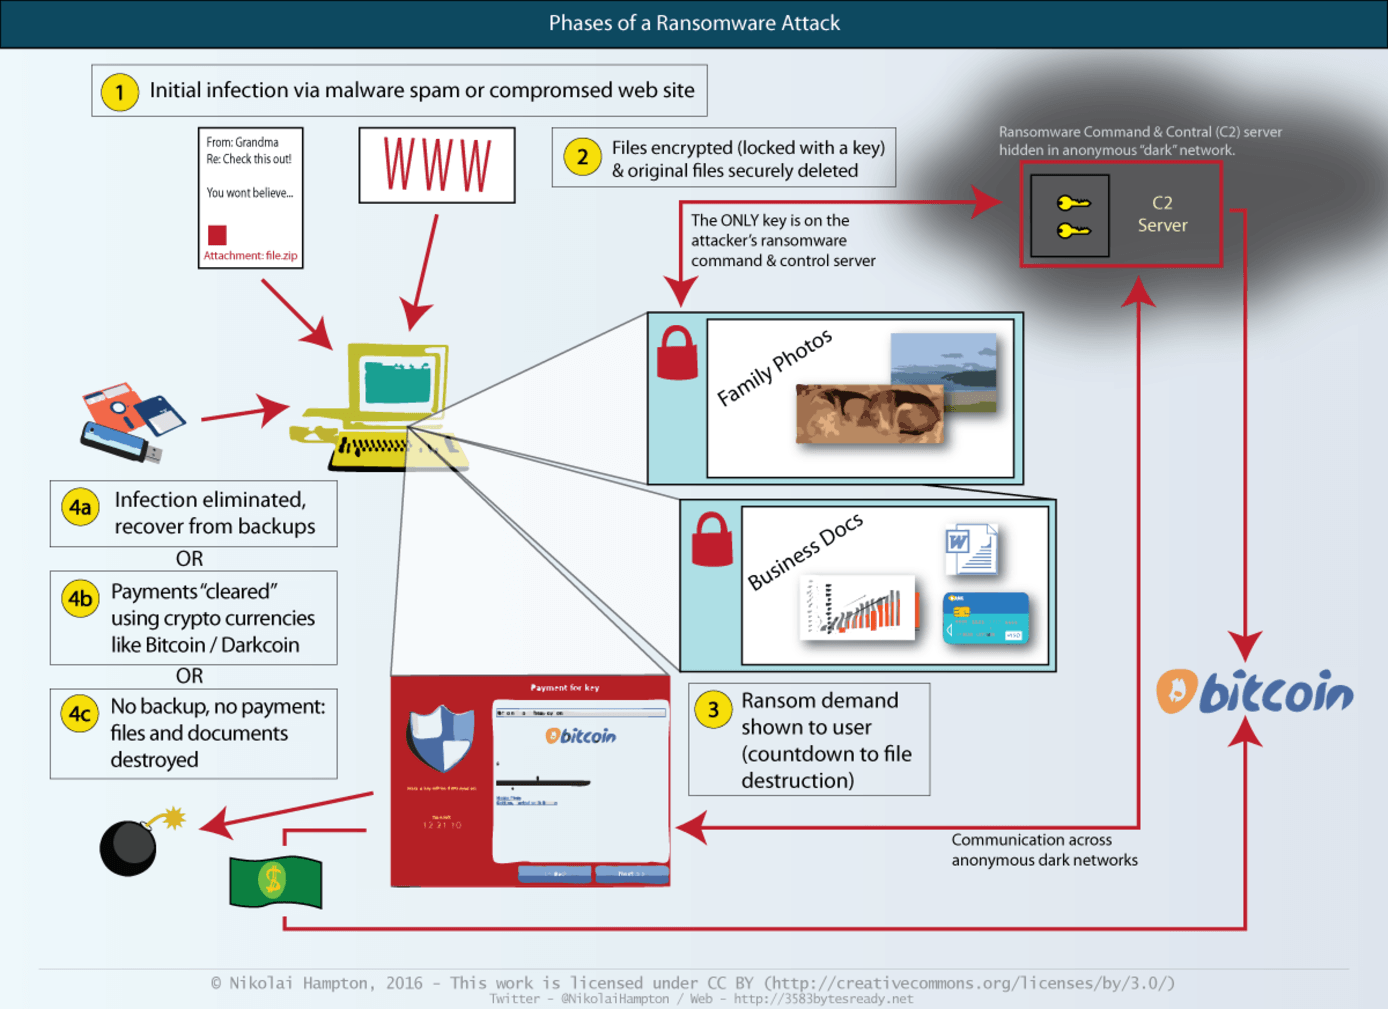 Phases of a ransomware attack